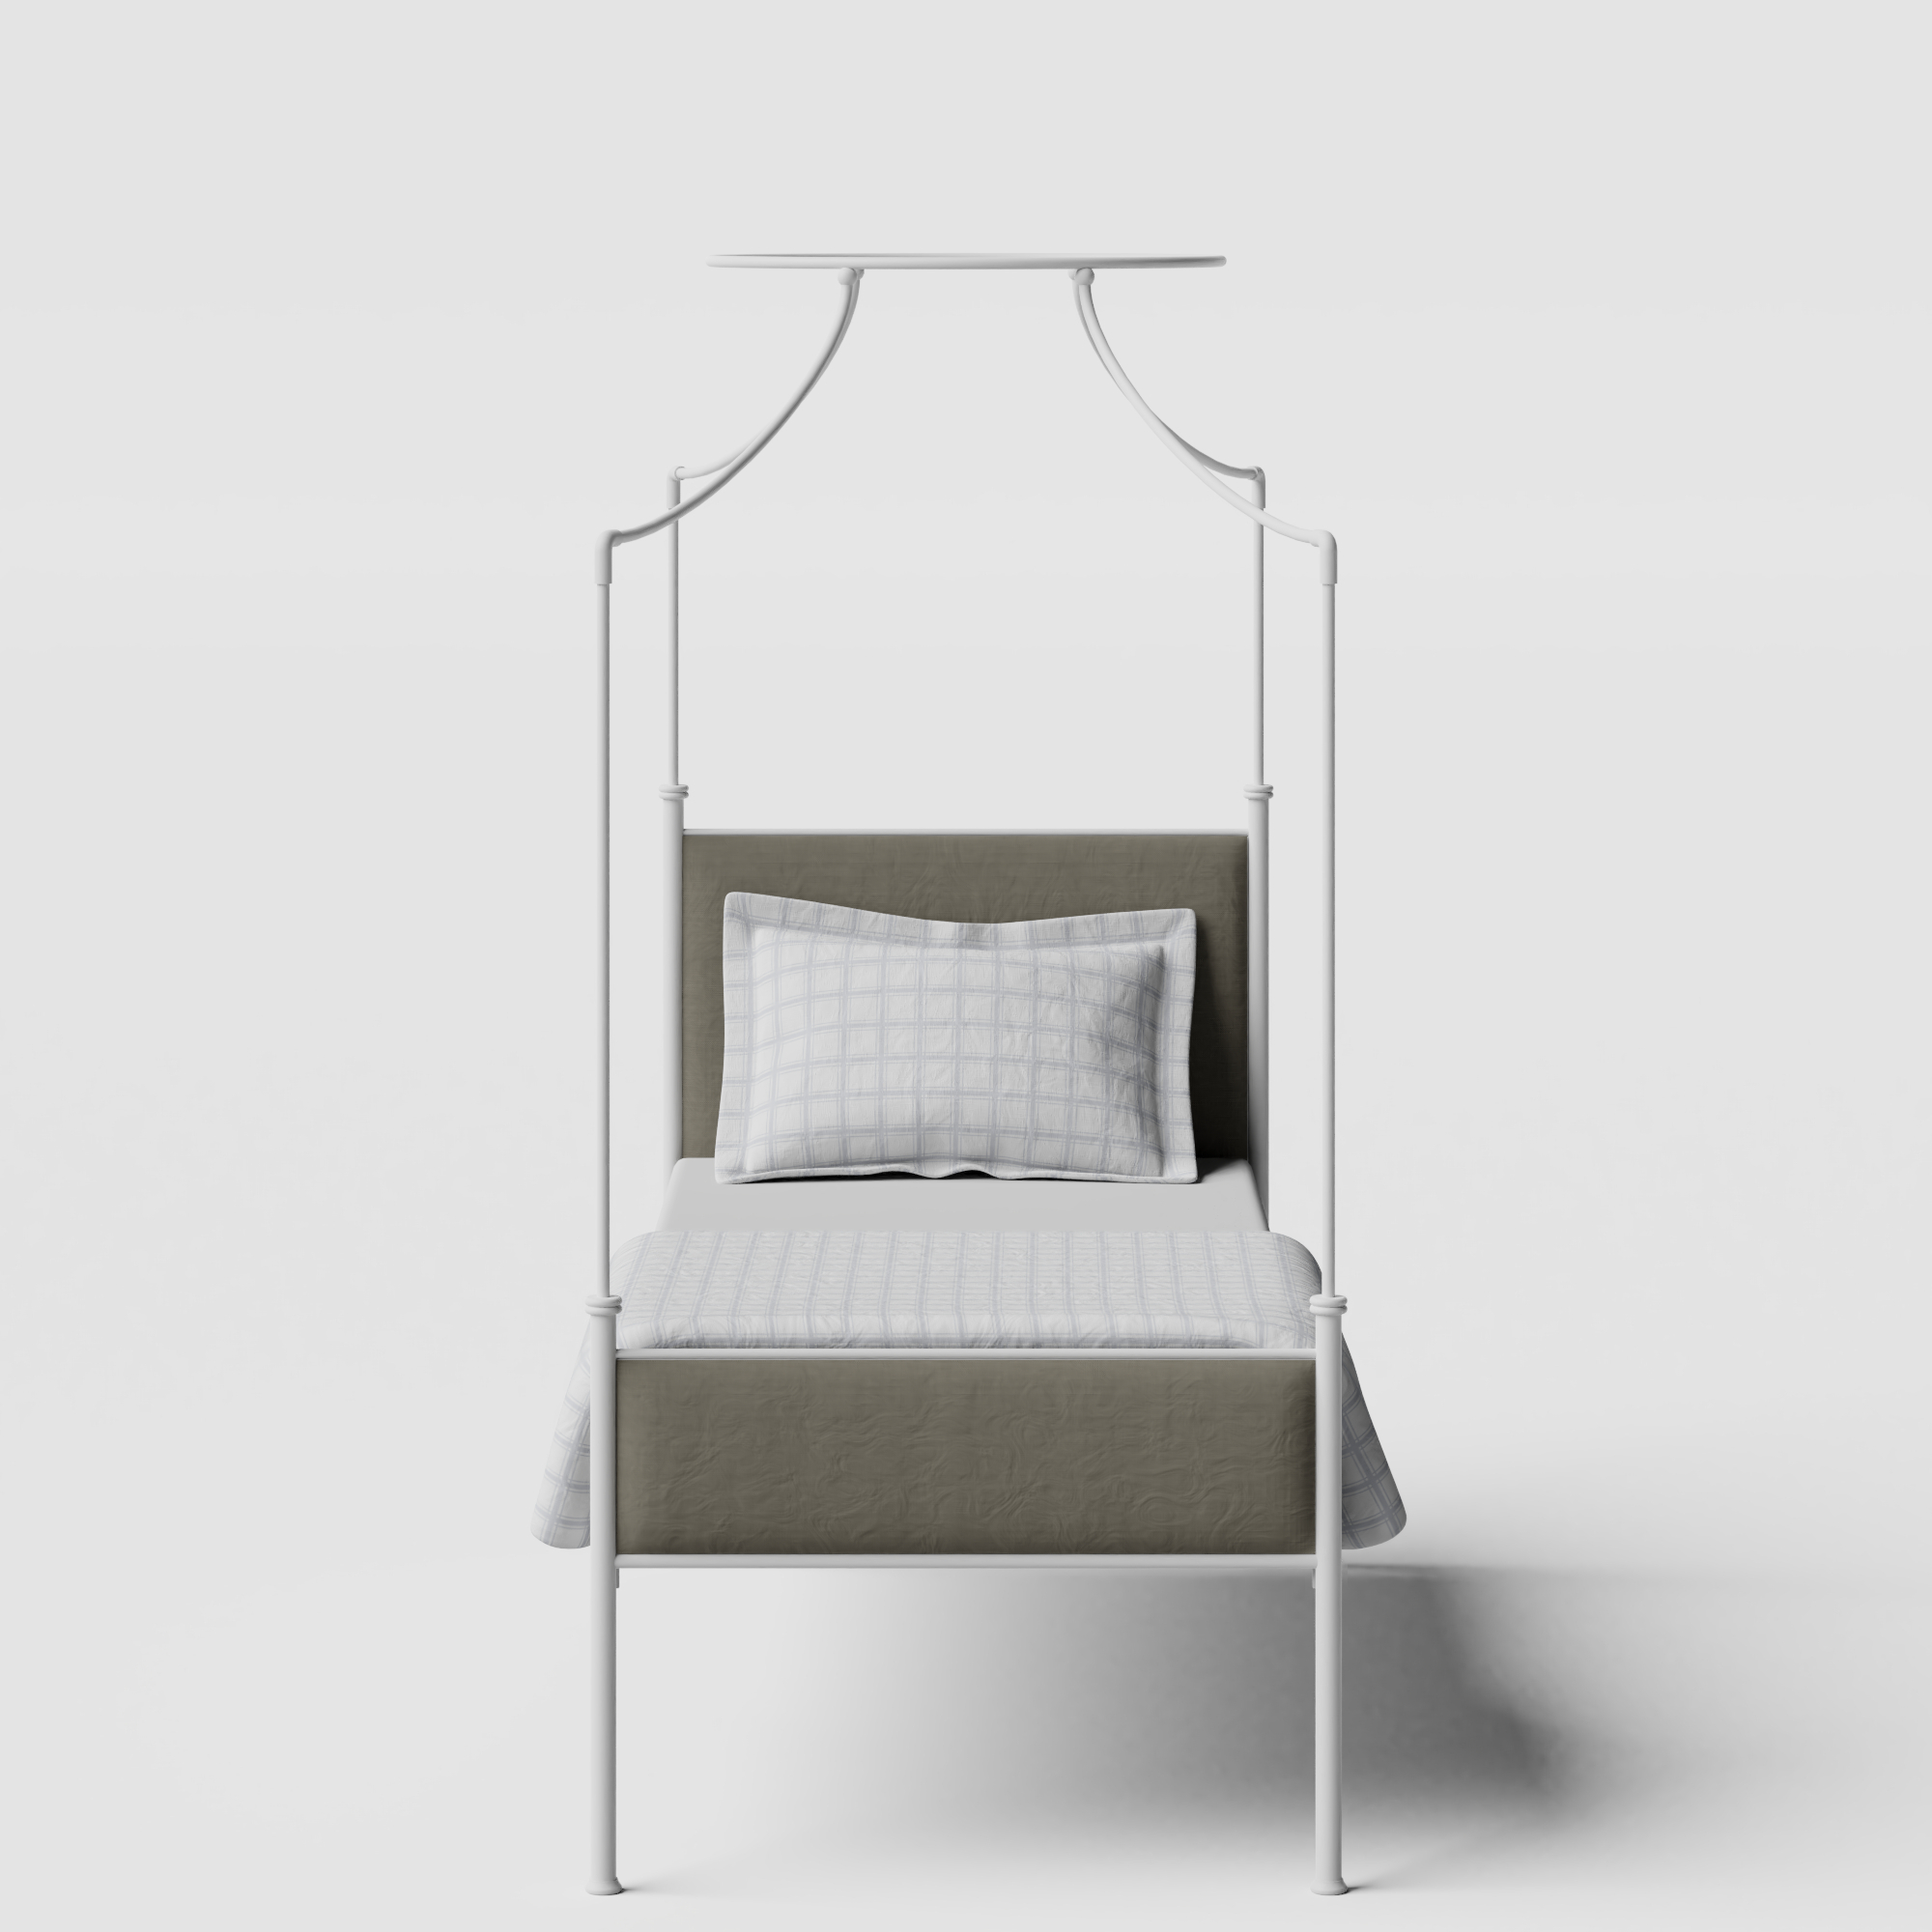 Waterloo iron/metal single bed in white